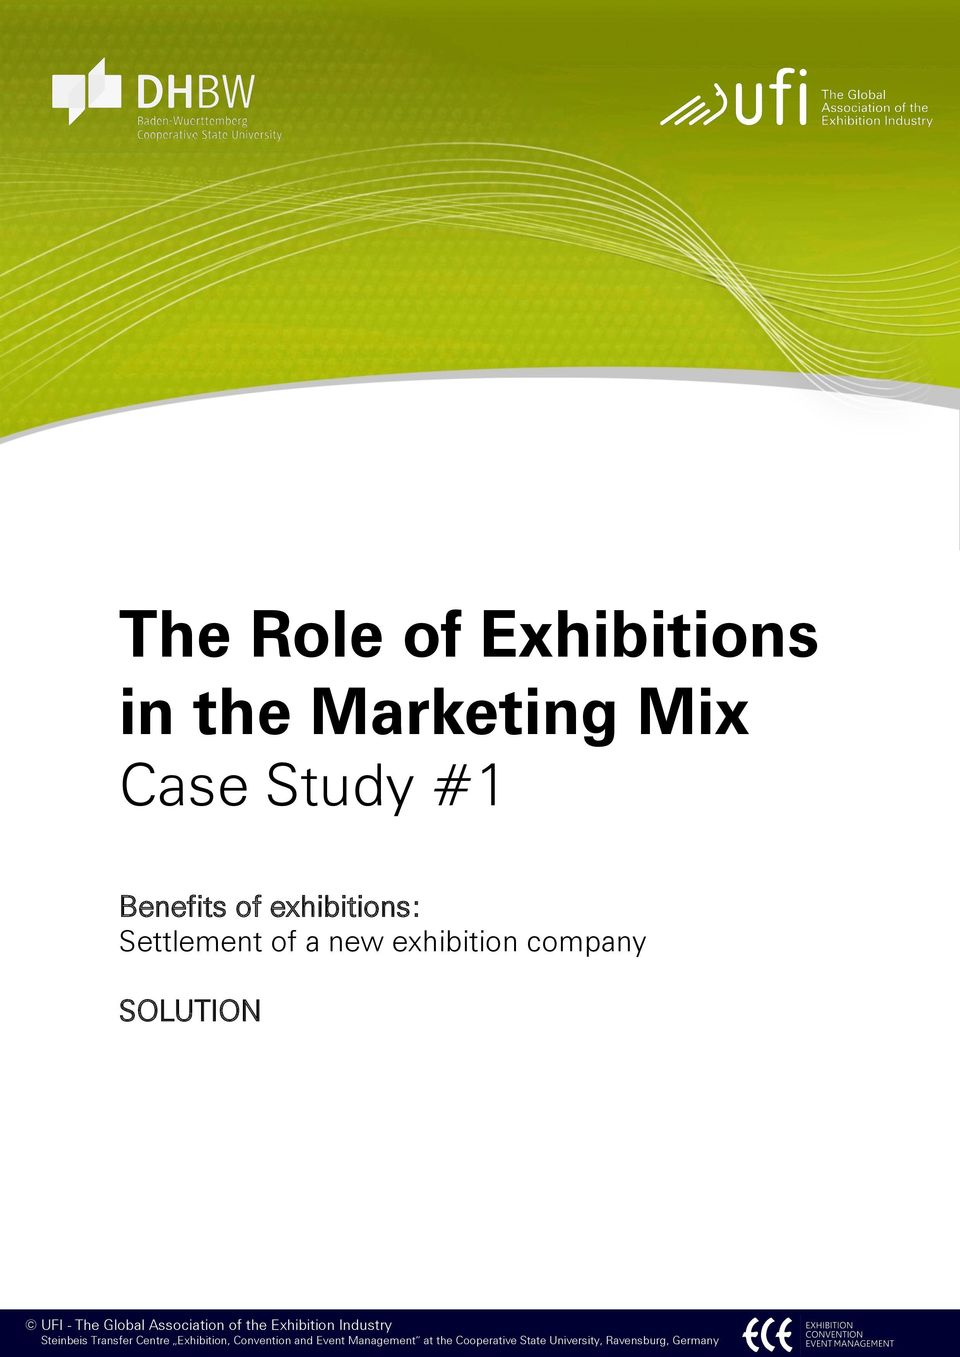 Marketing Mix Case